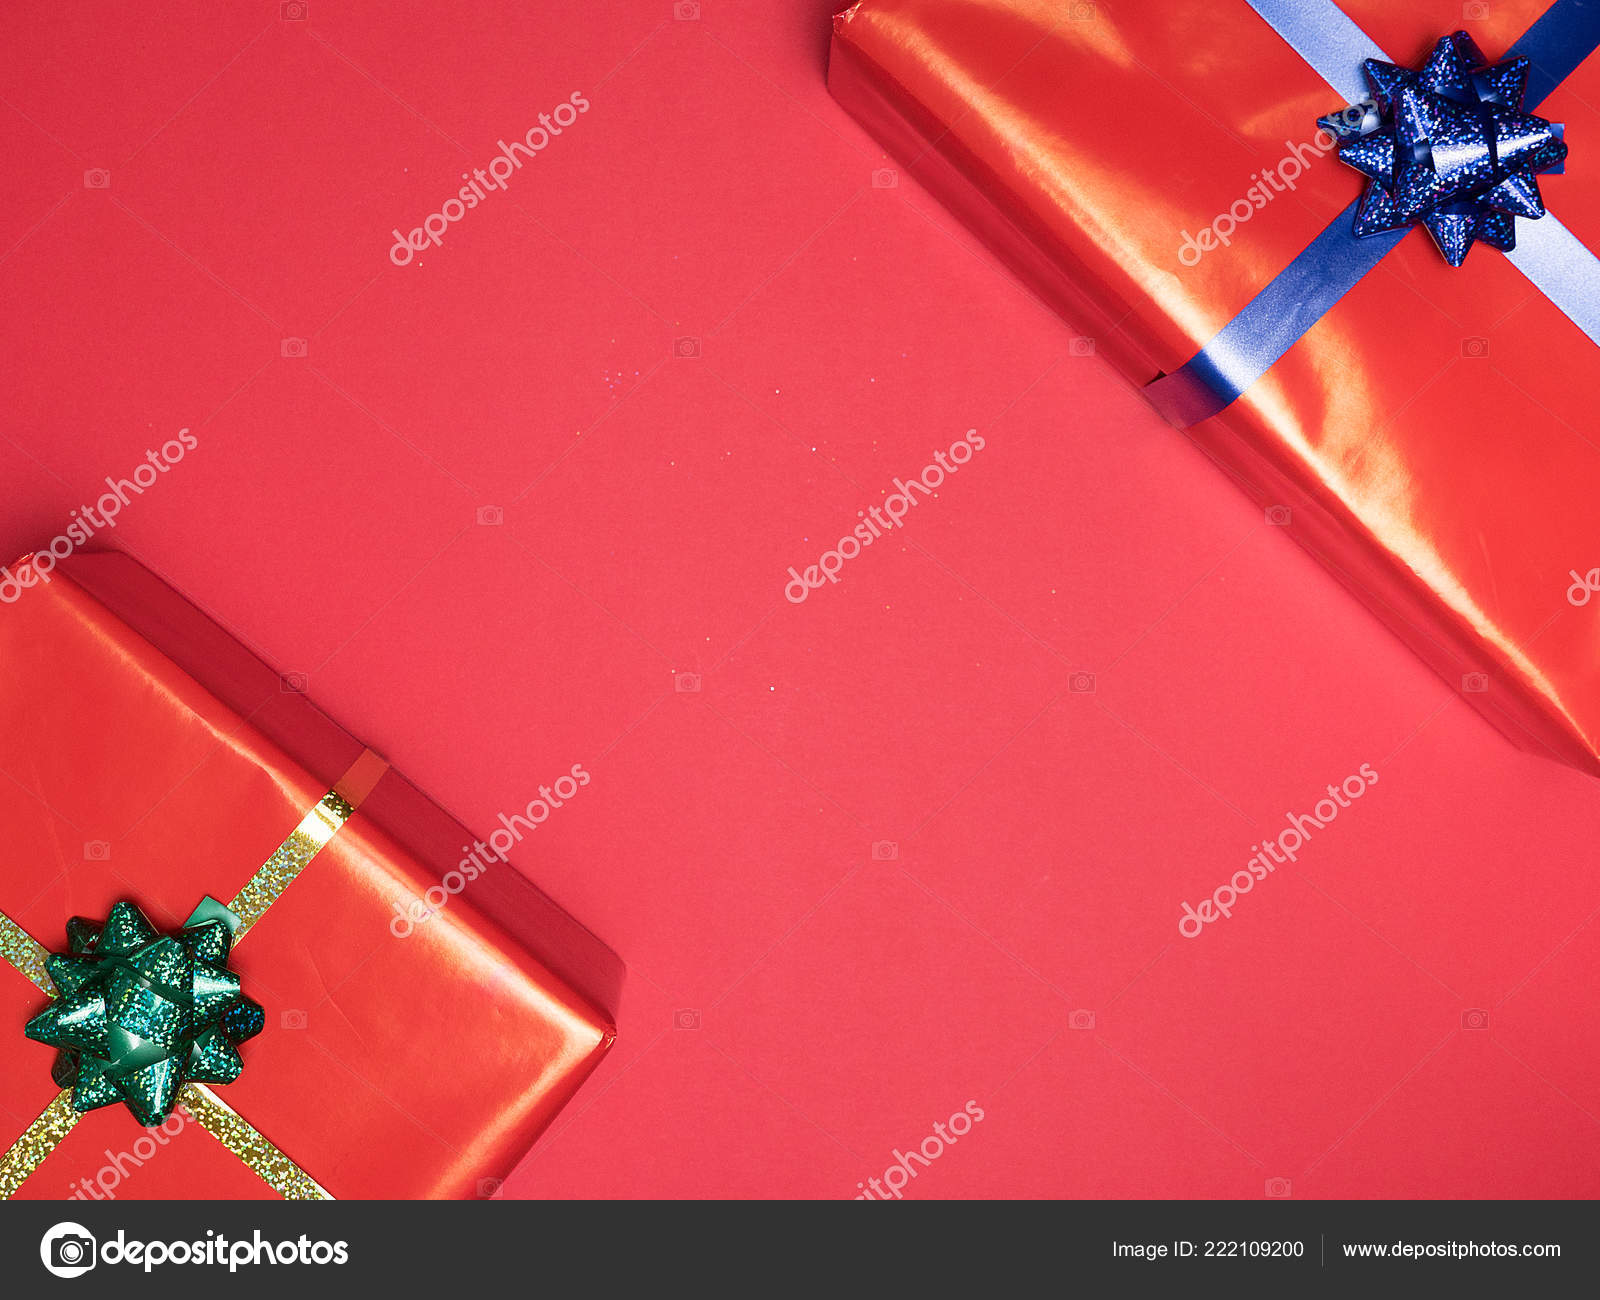 Christmas Background Gif Beautiful Christmas Red Gif Boxe On Red Background Stock Photo